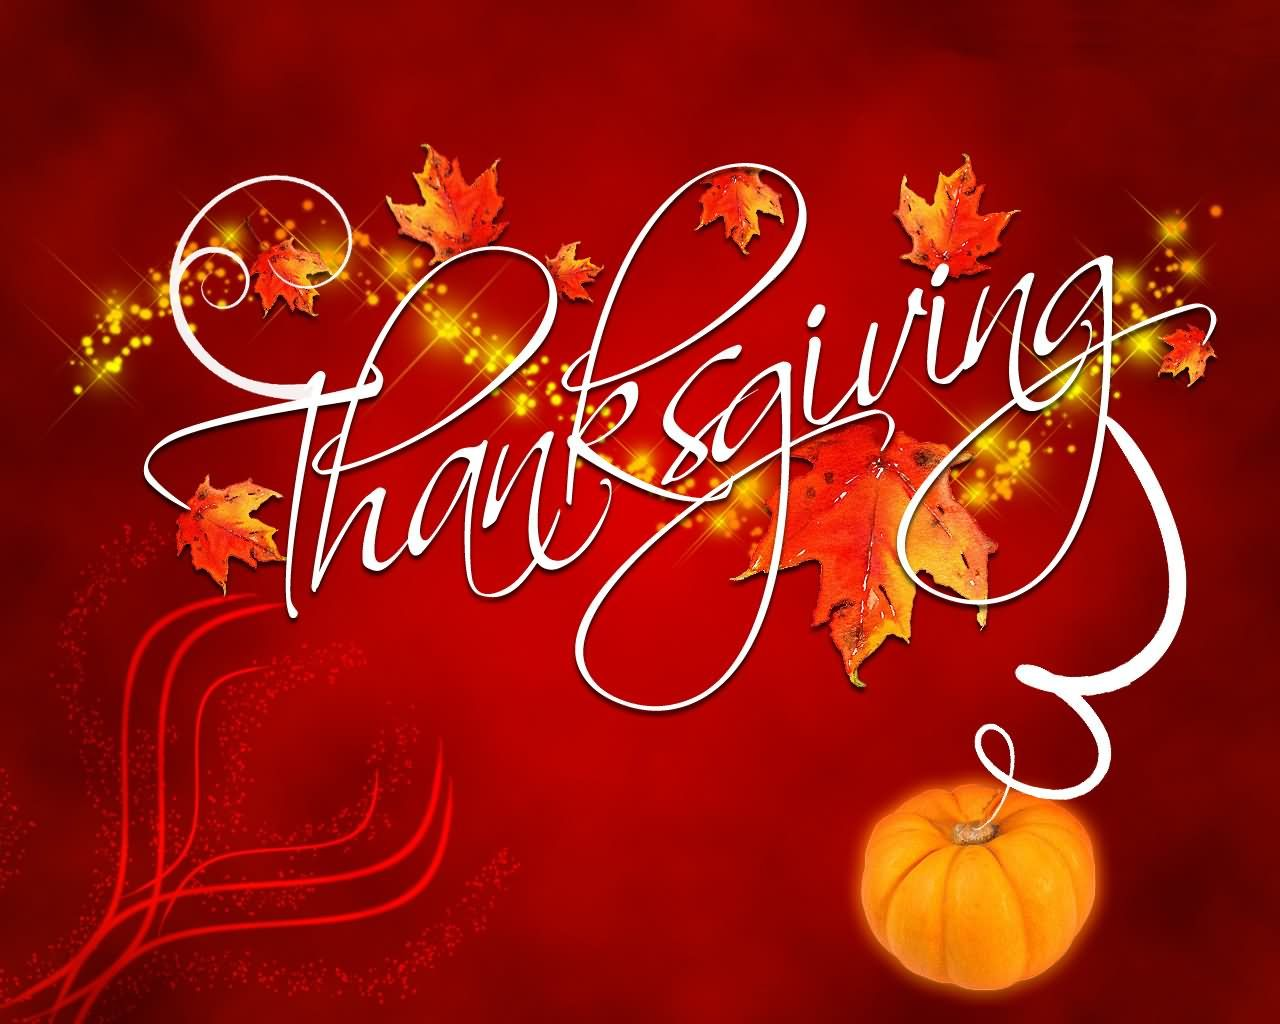 Happy Thanksgiving Wishes HD Wallpapers Download Free Tumblr